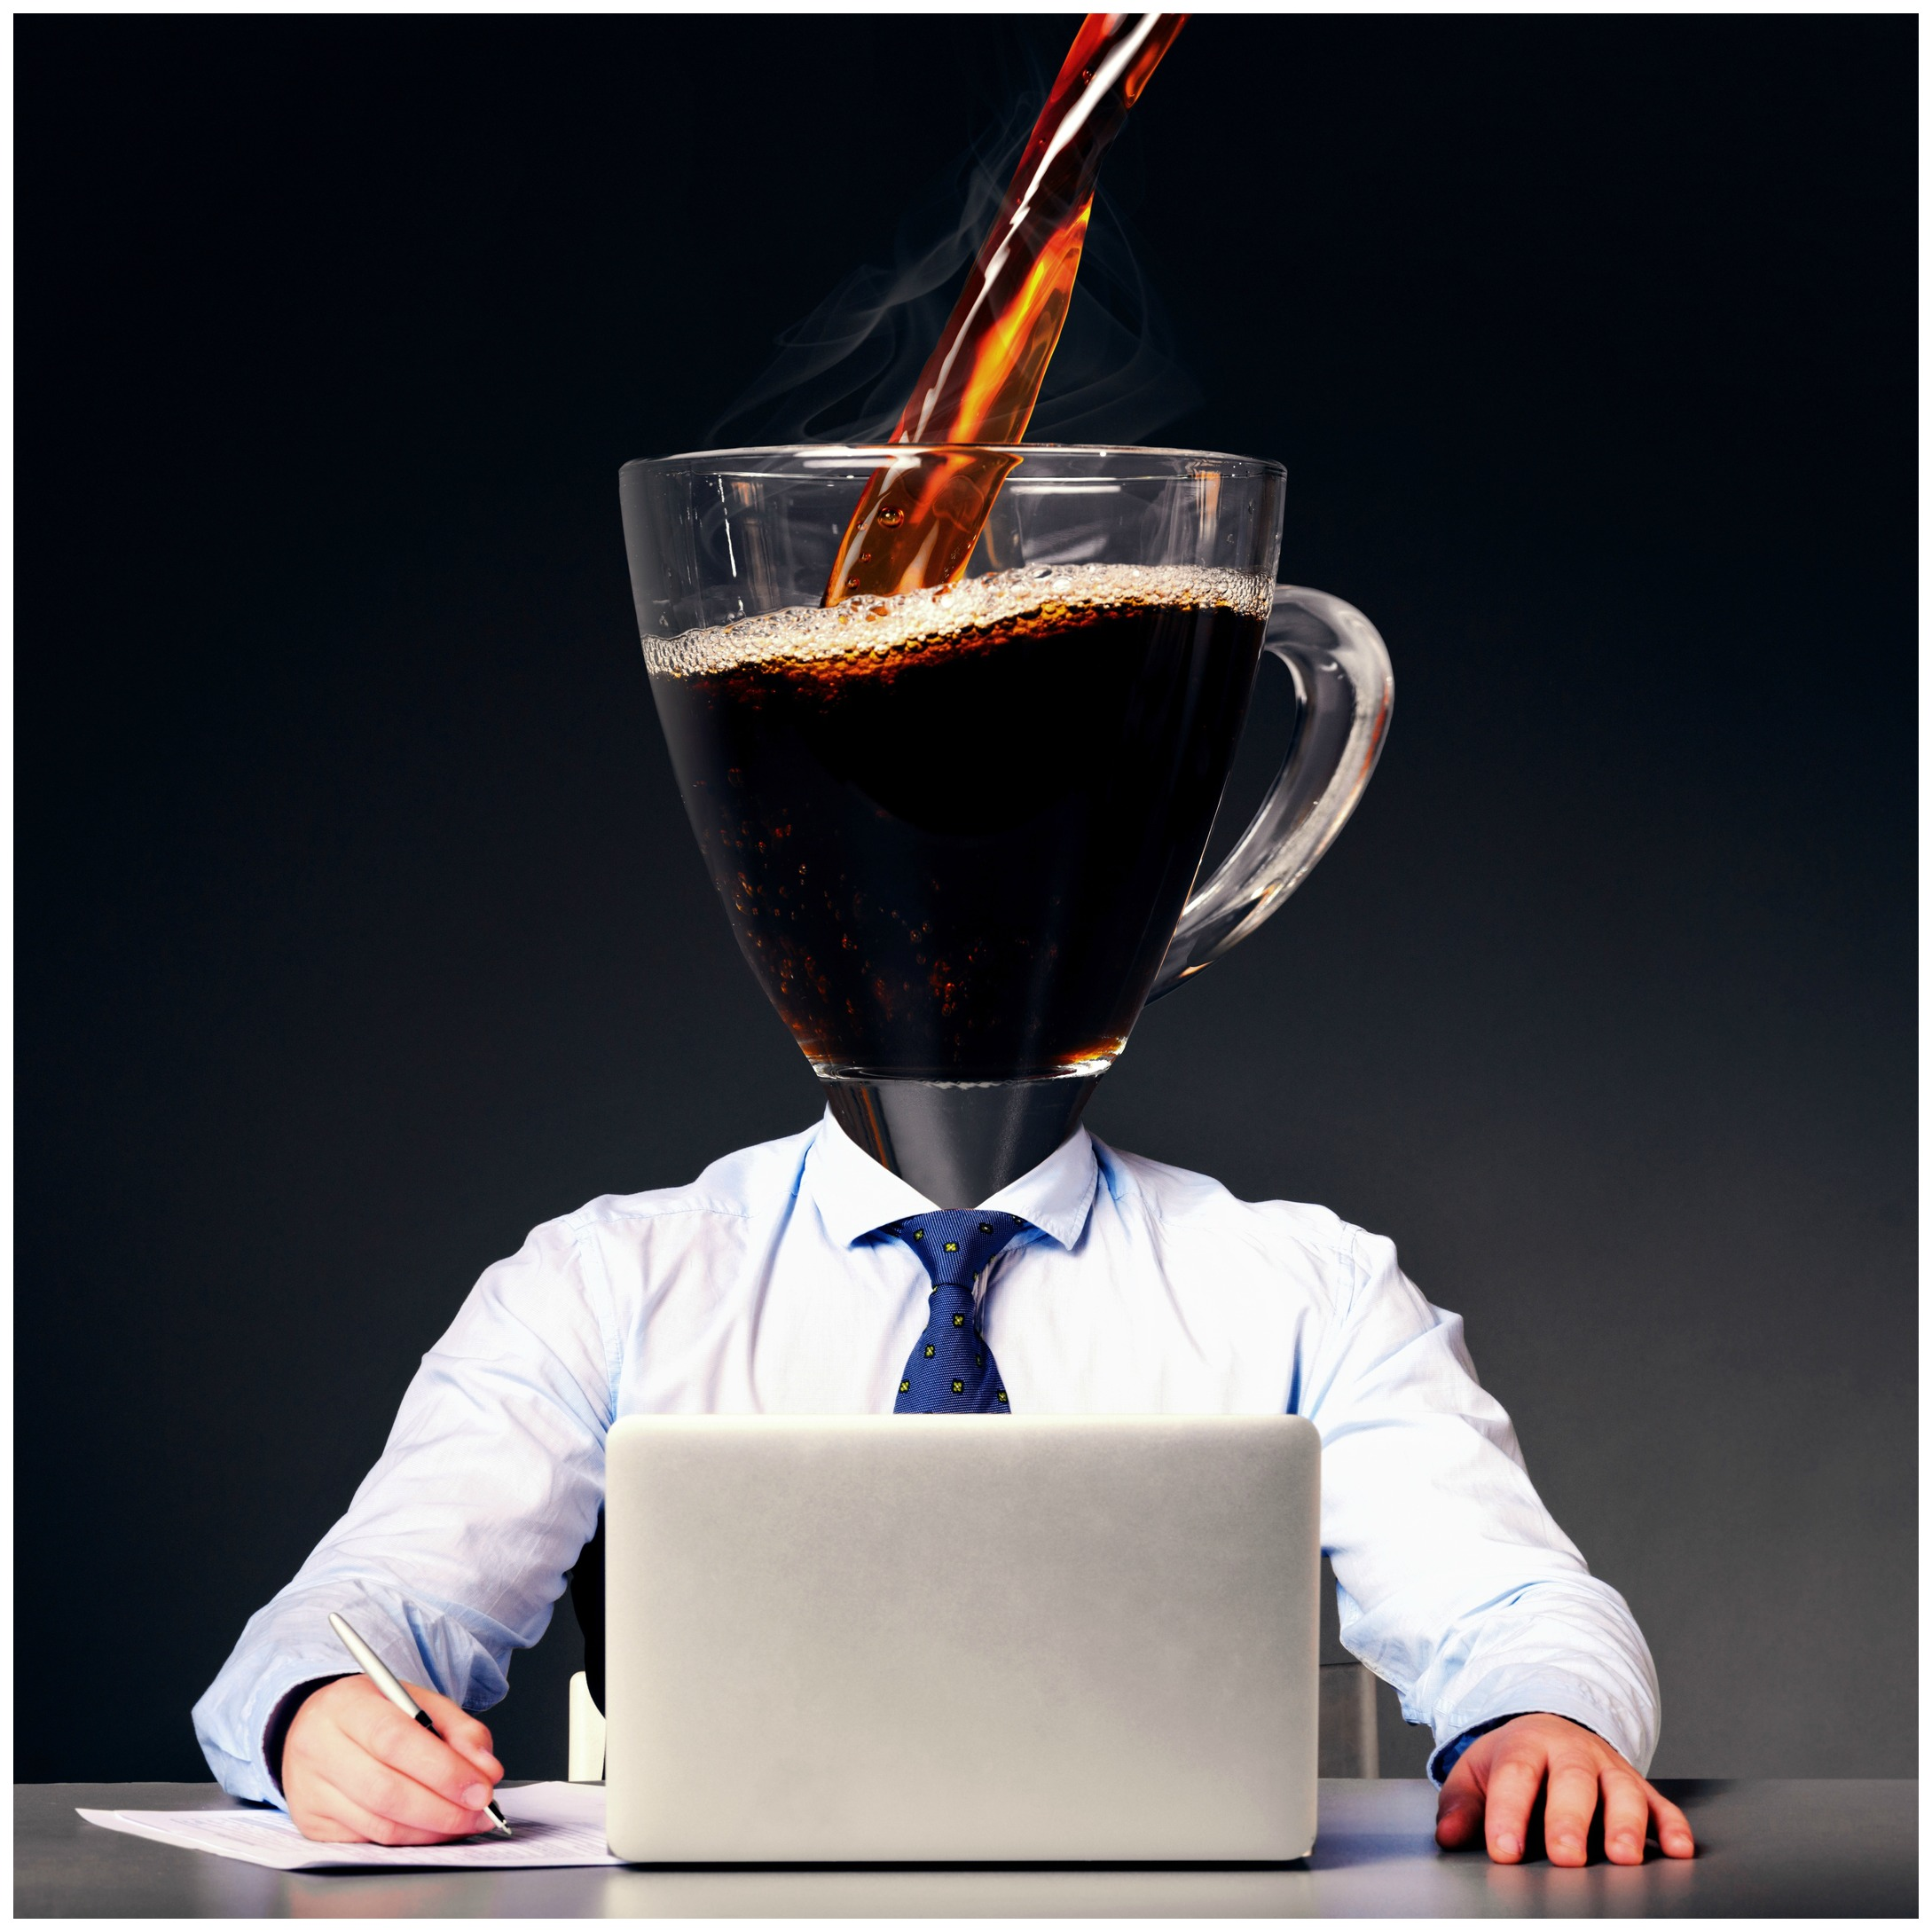 A large cup of coffee being poured which can adversely affect your sleep.